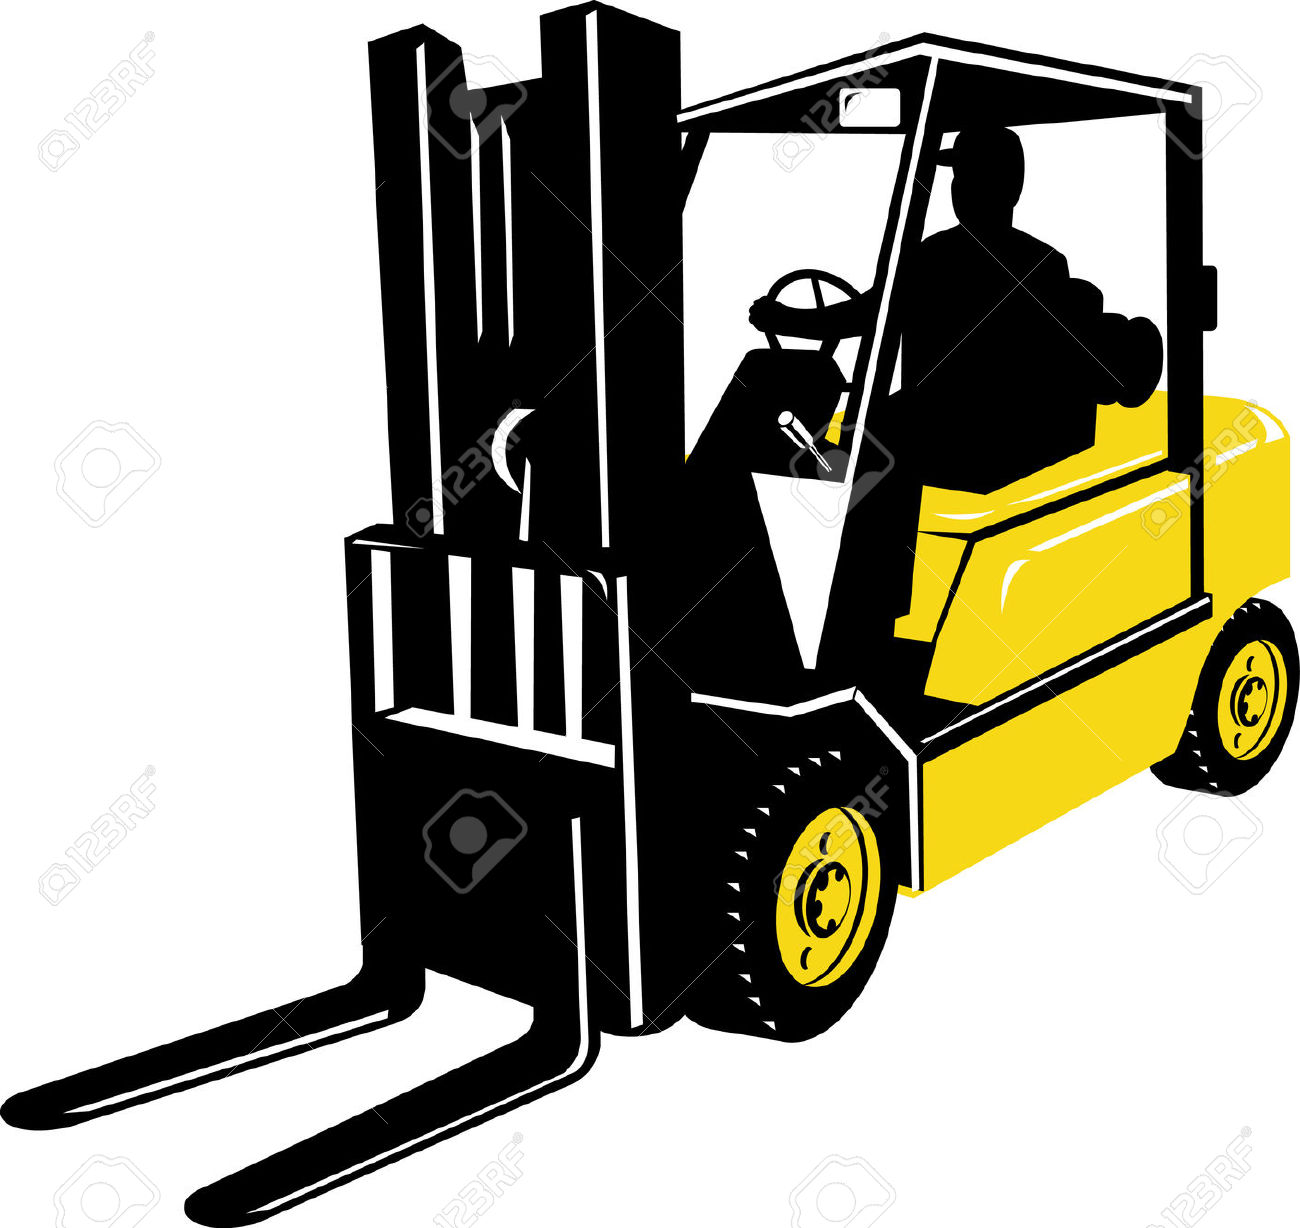 Forklift Truck Royalty Free Cliparts, Vectors, And Stock.